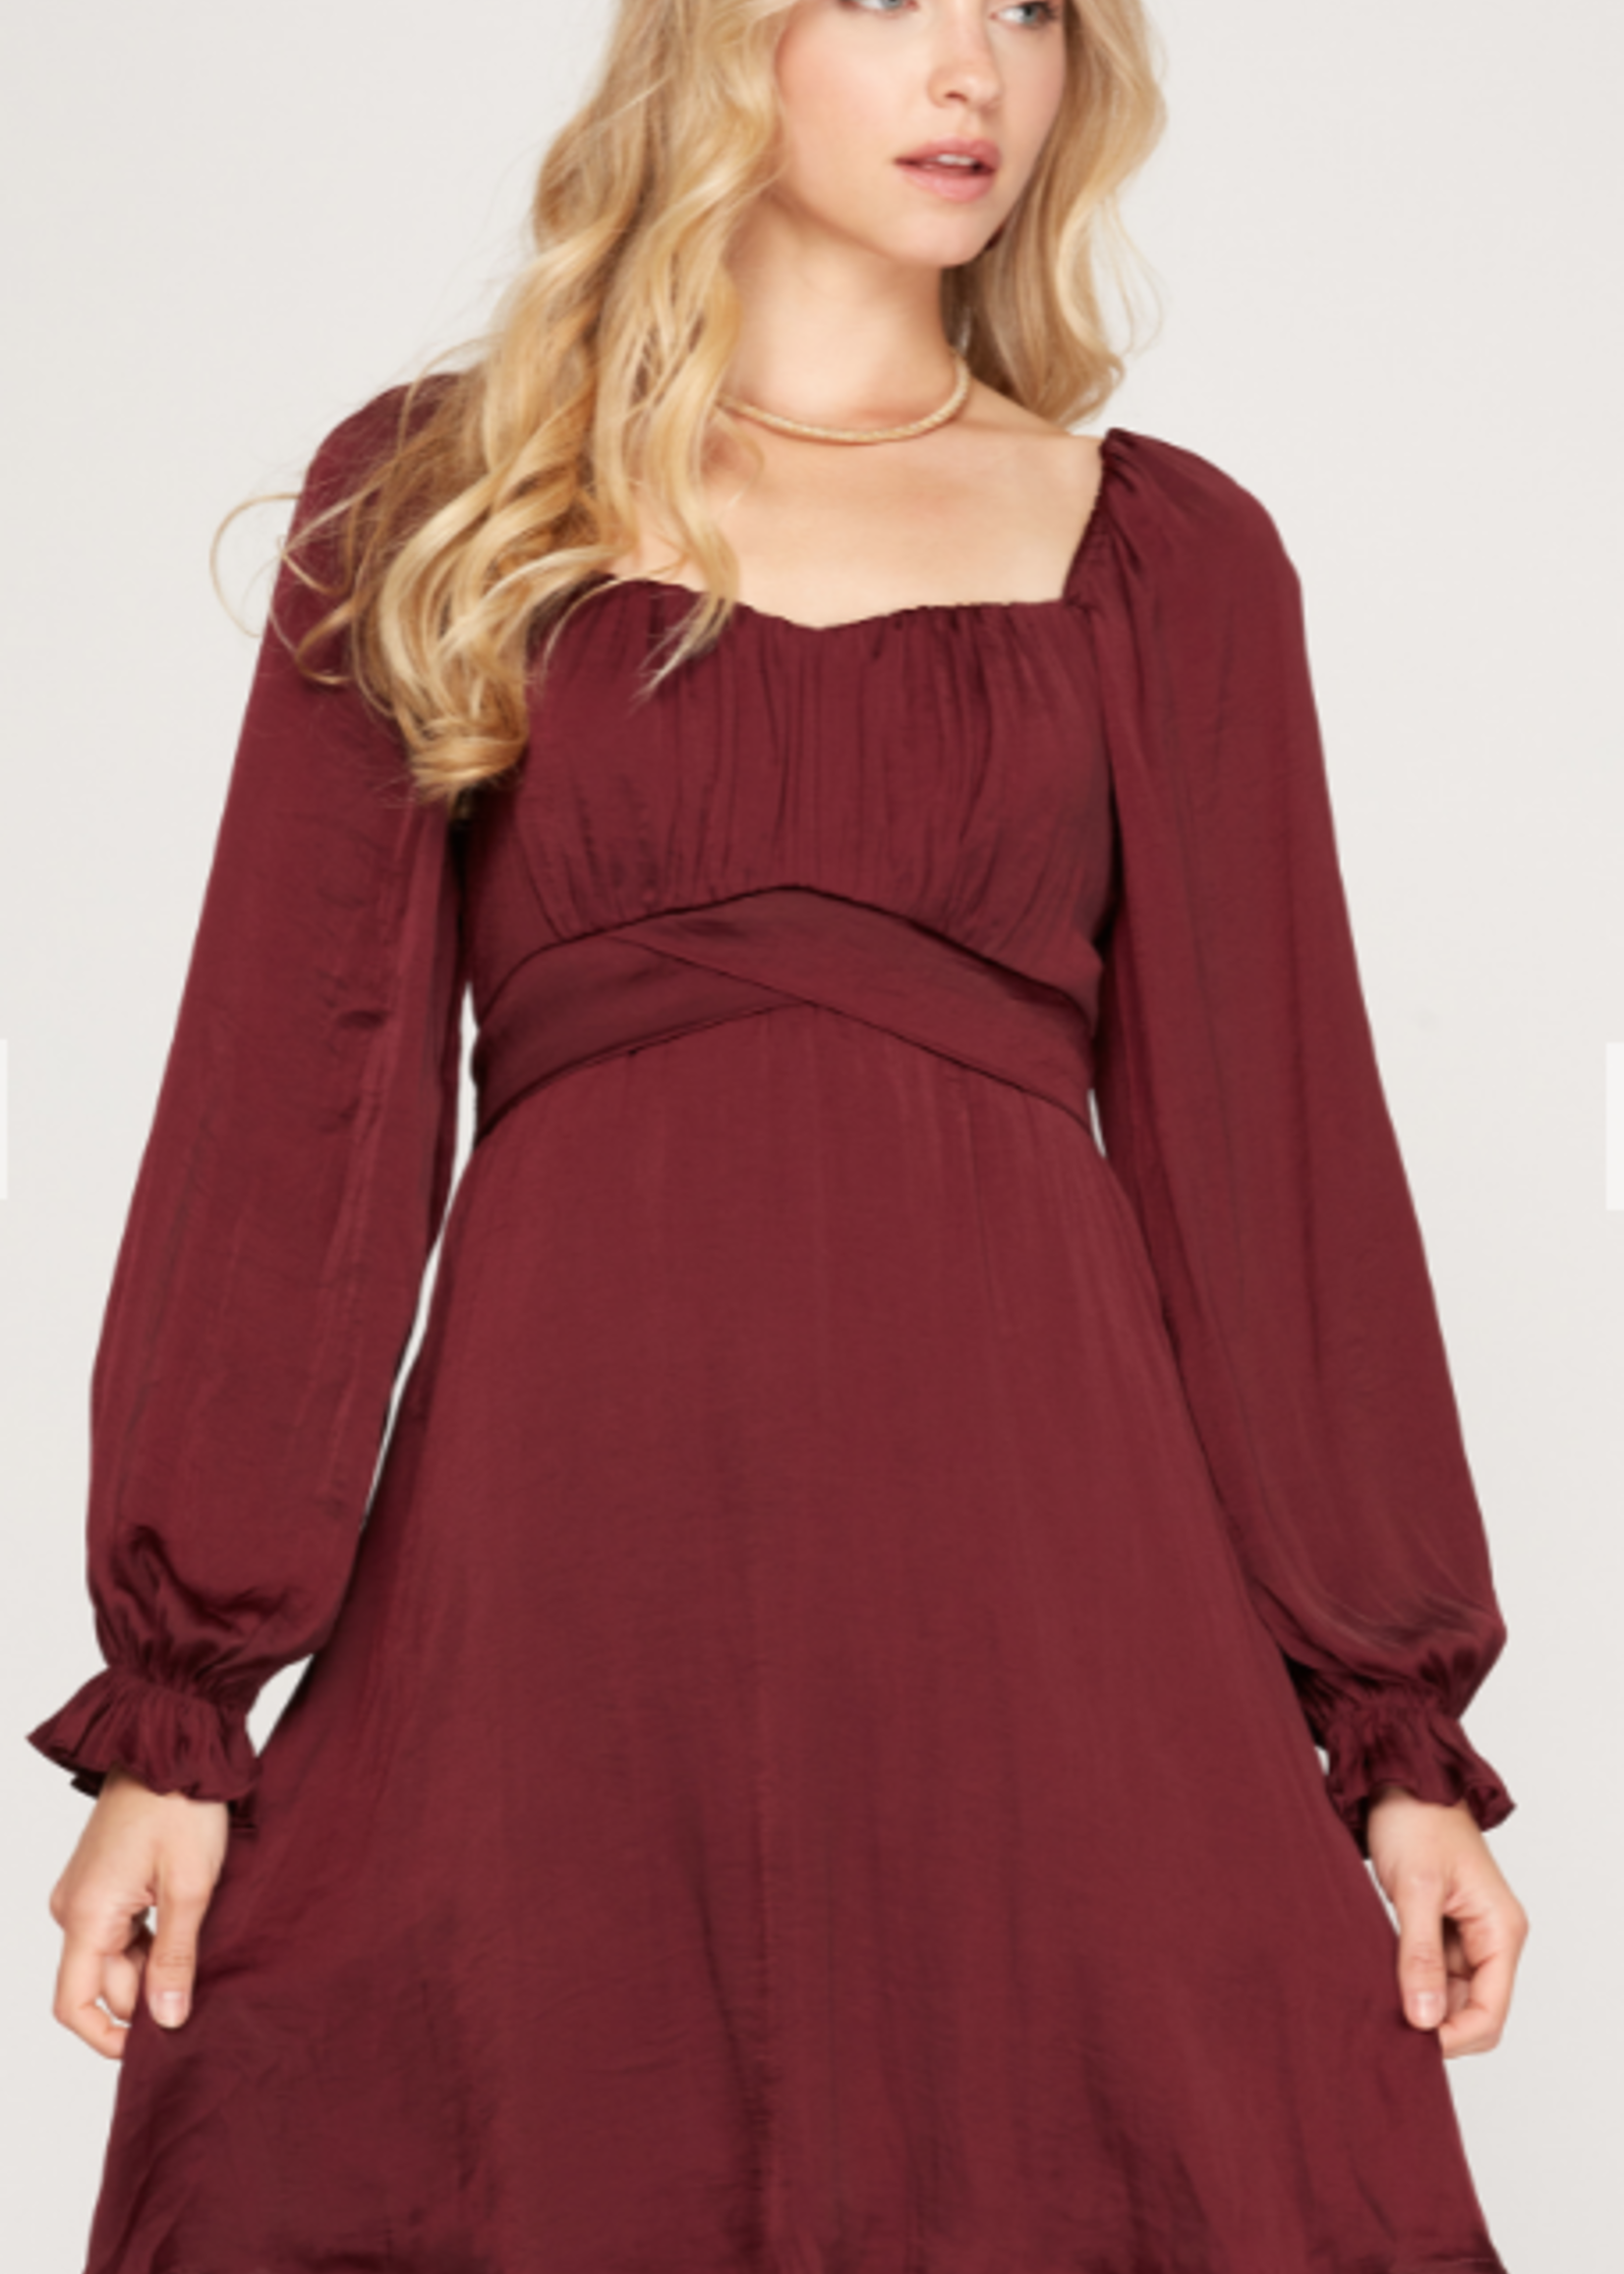 Moments To Celebrate Dress (2 Colors)